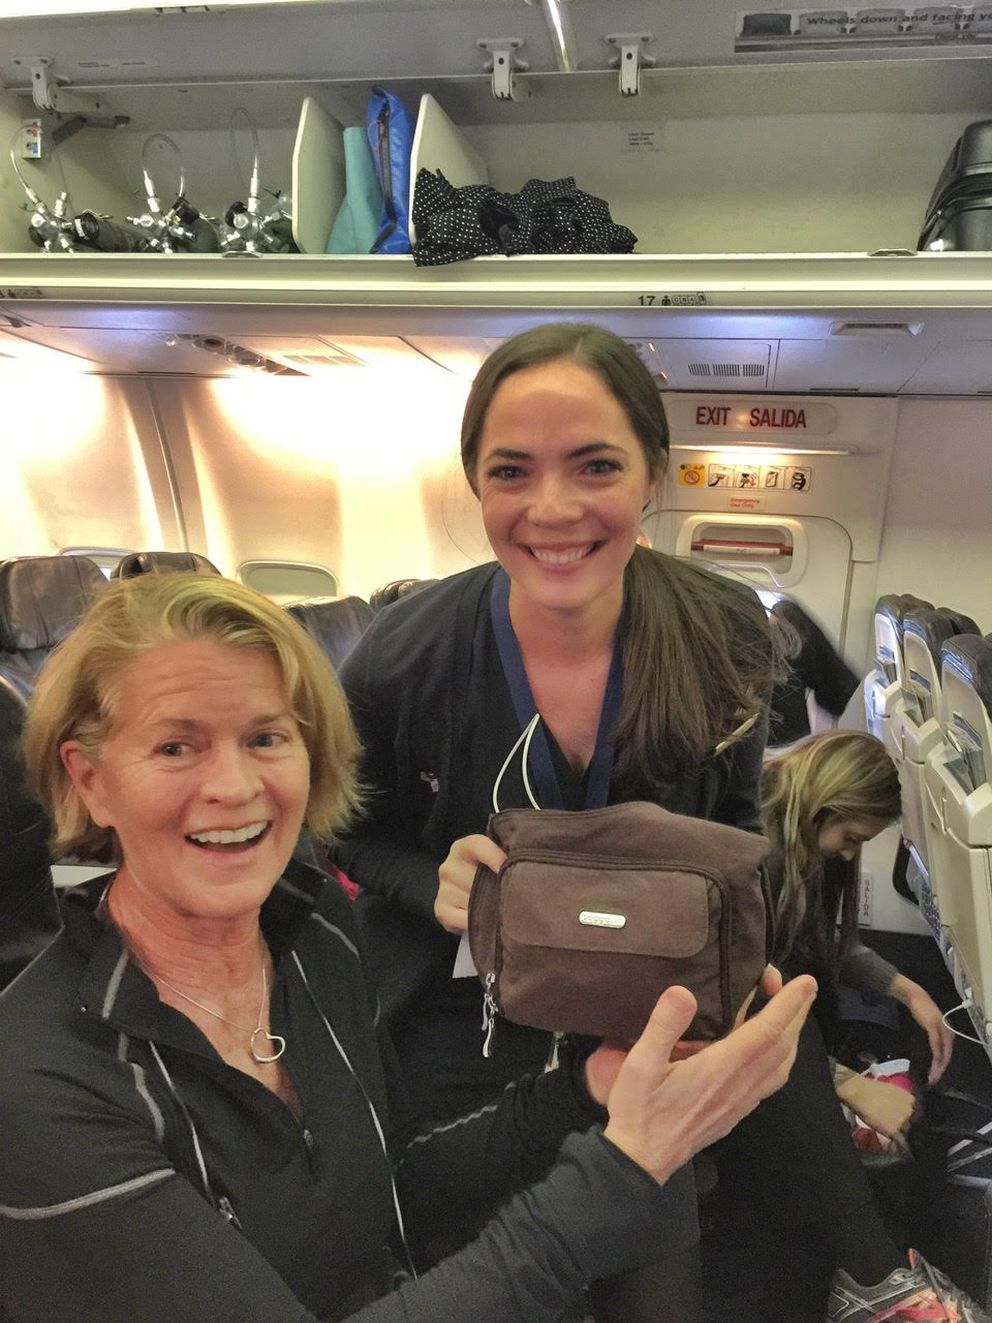 Leah, seated, left her purse in the airport. One of the Alaska Airlines lounge hosts ran to the plane and handed it to flight attendant Robyn to return to Leah. (Photo: Scott McMurren)